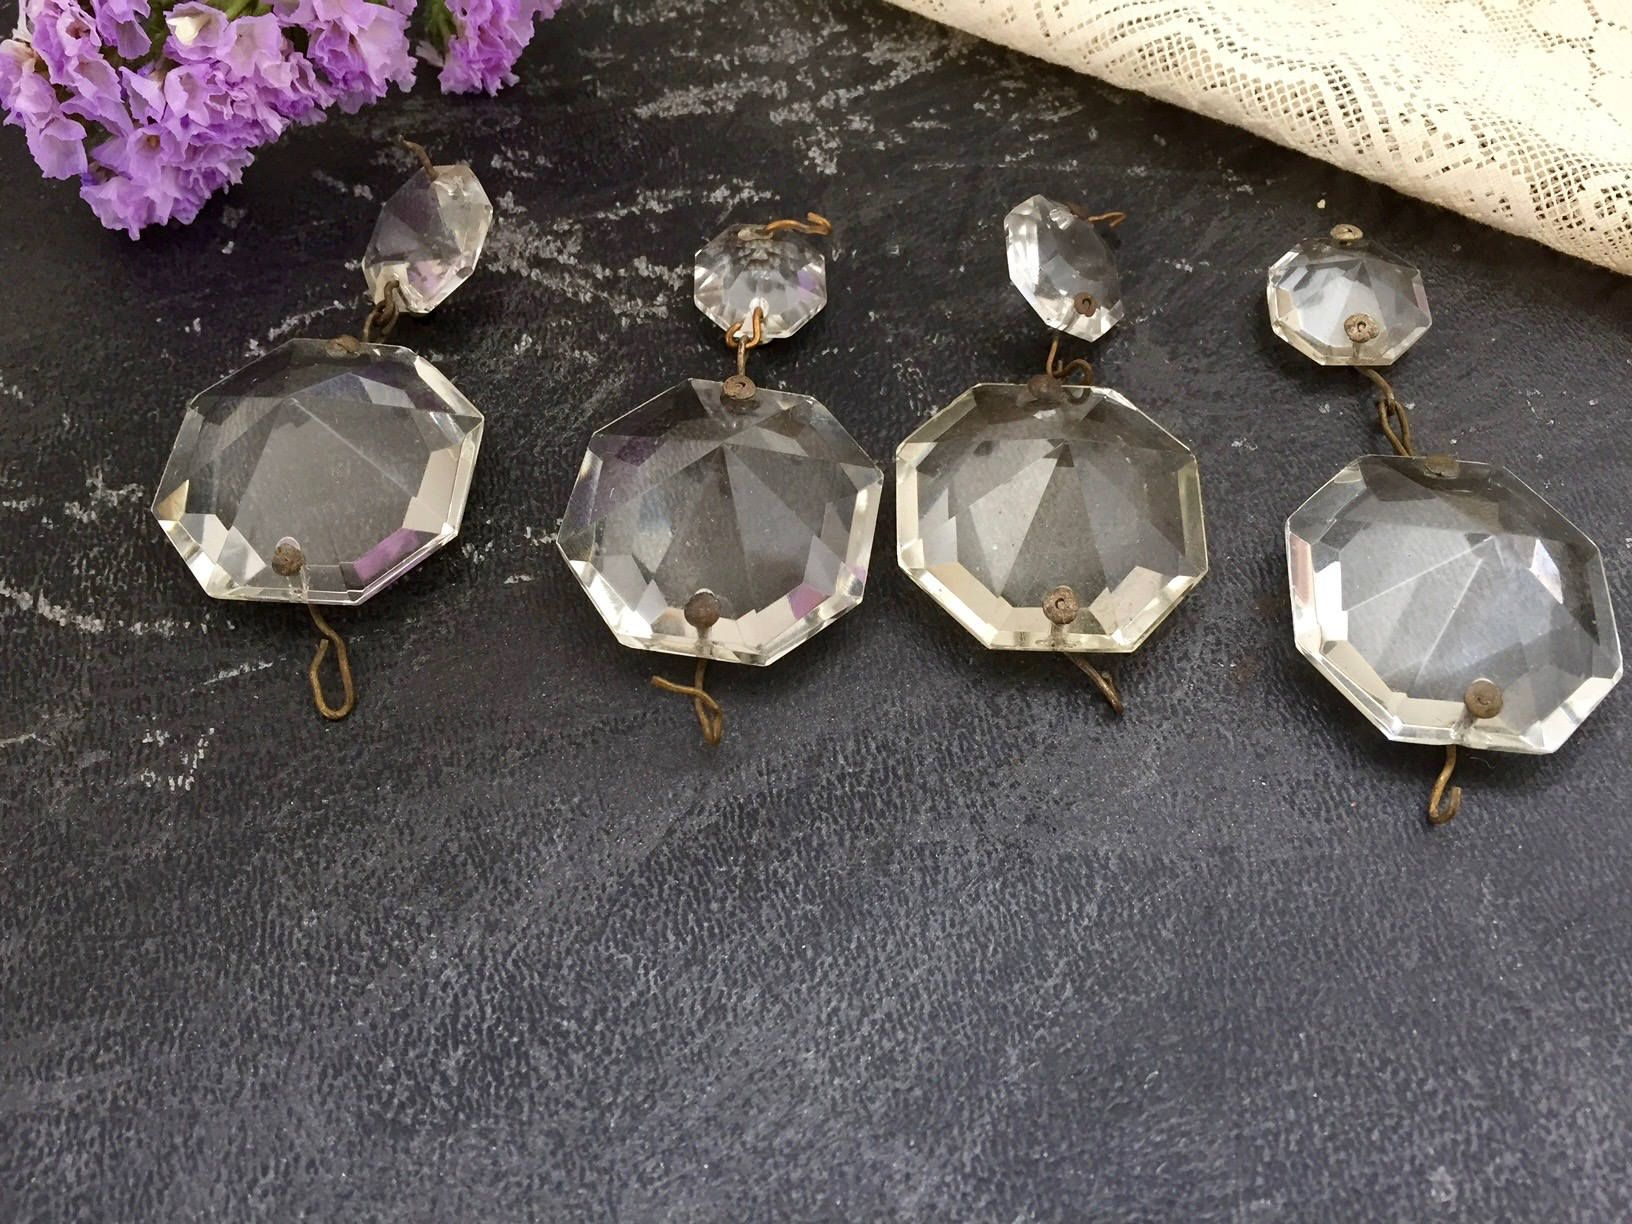 4 Vintage CHANDELIER OCTAGONAL CRYSTALS, Jewelry Making Crystals, Pyramid Faceted Octagonal Chandelier Crystals by BarnboardAntiques on Etsy